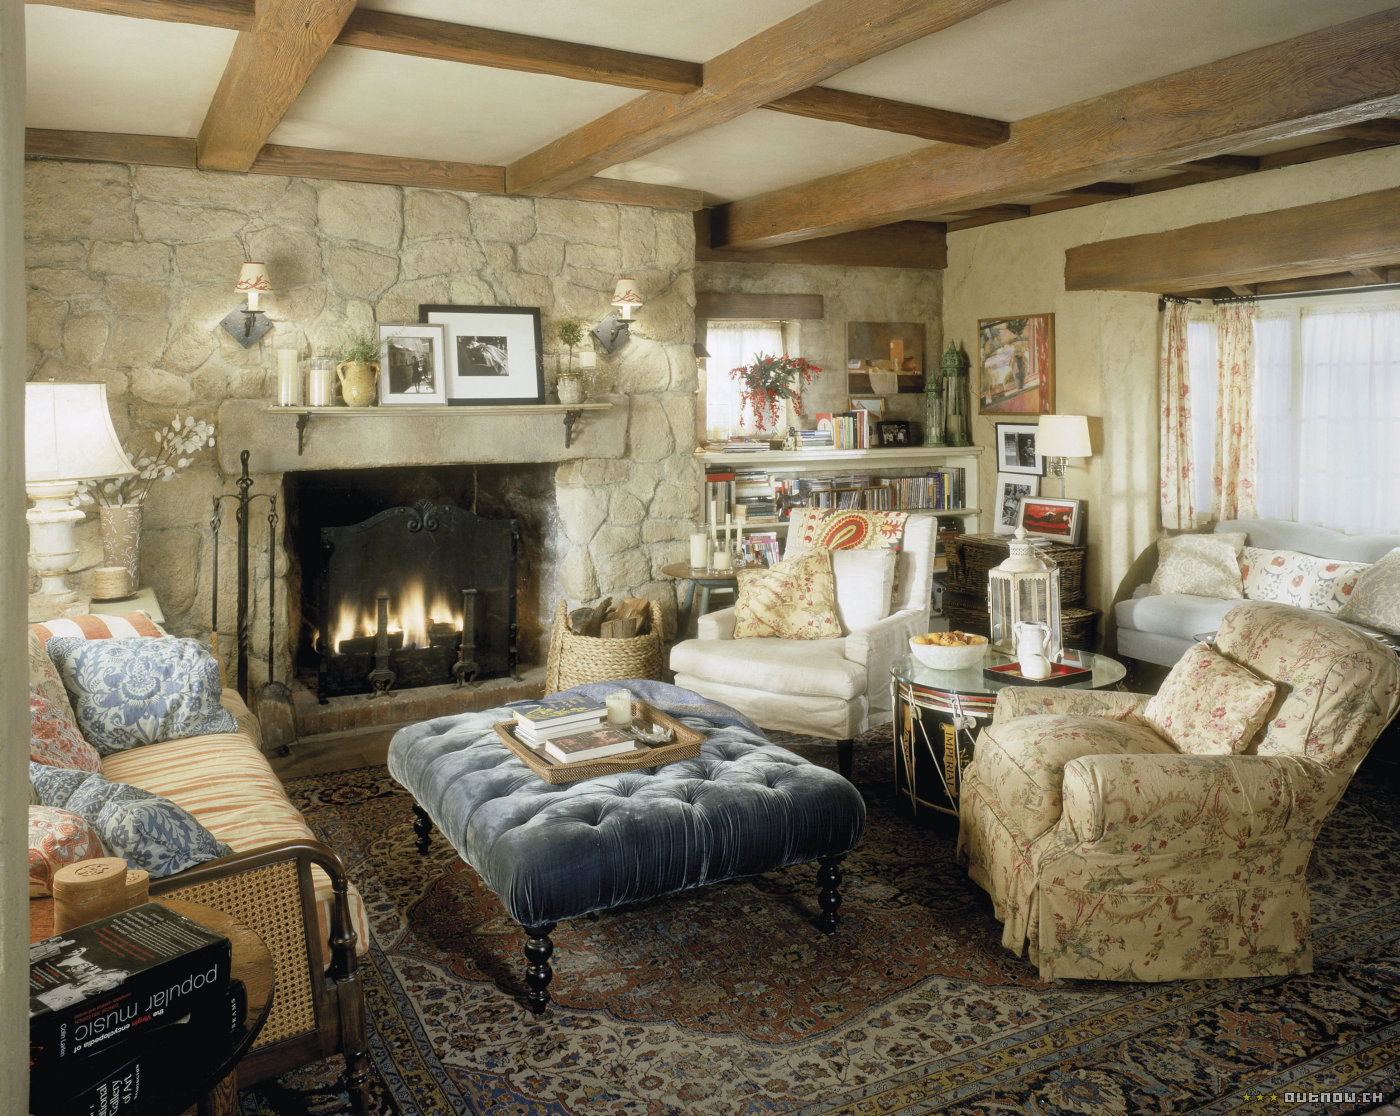 Country Style Decor All Things Luxurious Nancy Meyers Movie Interiors Quotthe